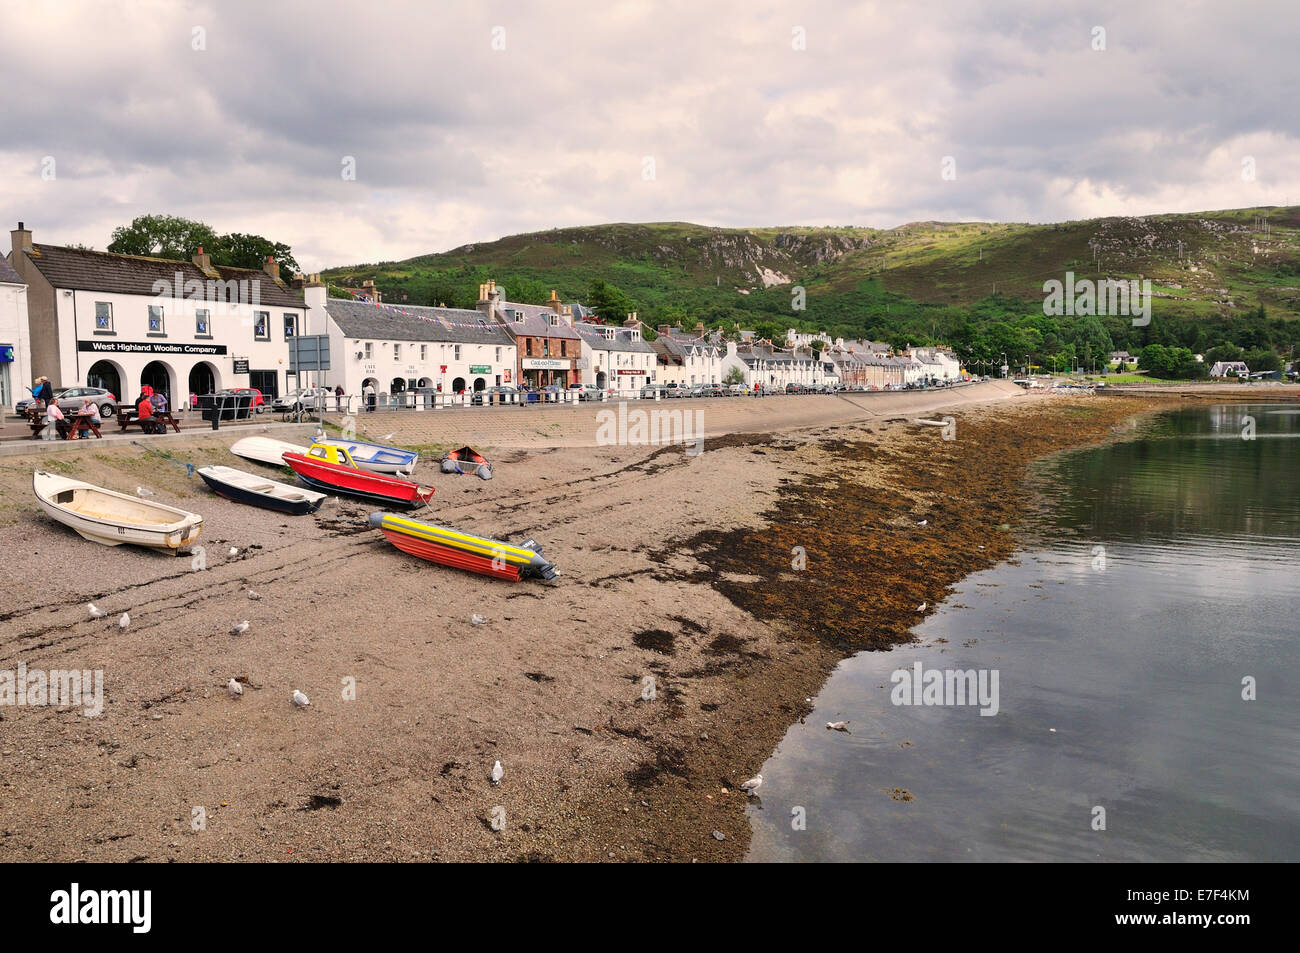 Boats on the beach of Shore Street, Ullapool, Caithness, Sutherland and Ross, Scottish Highlands, Scotland, United - Stock Image